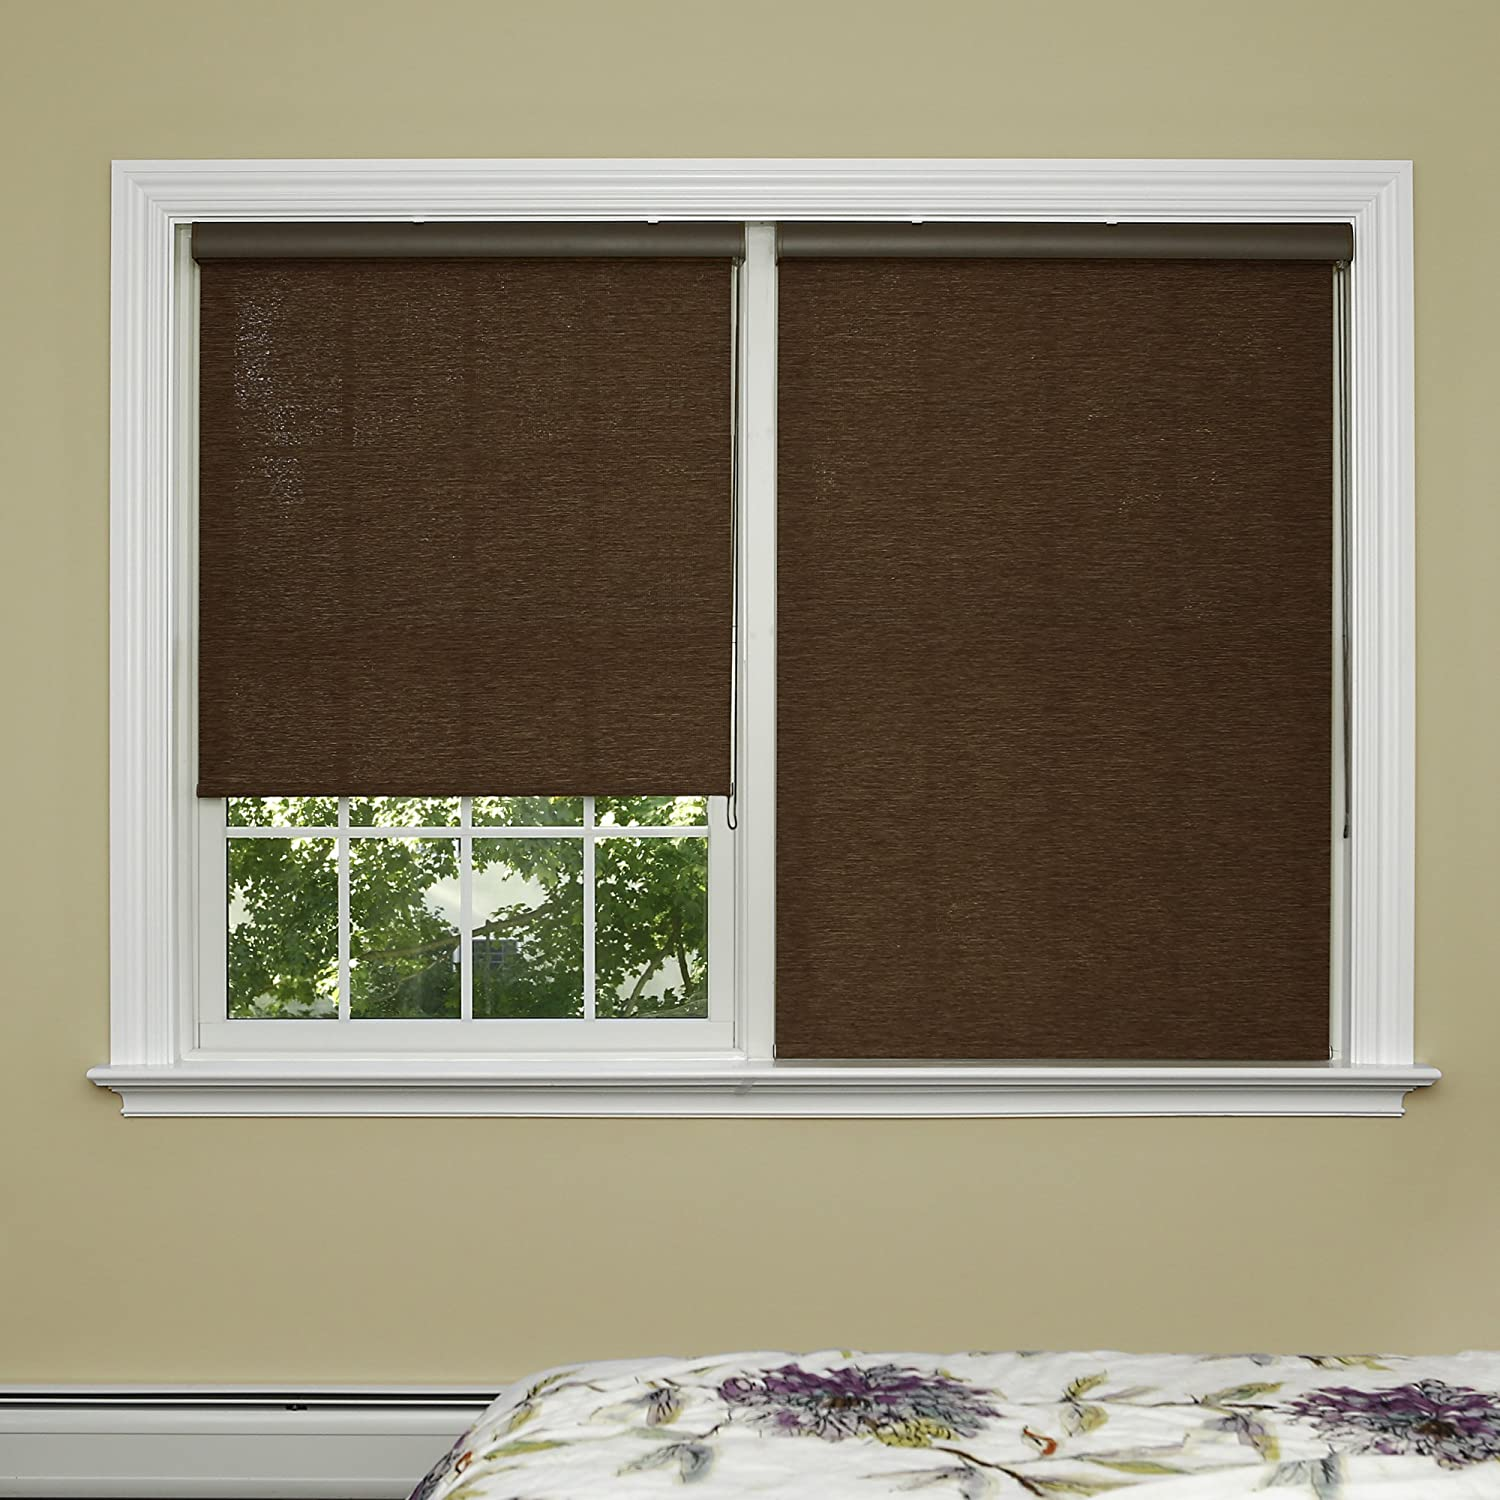 Best Home Fashion Closeout Premium Single Wood Look Roller Window Shade - Brown - 28